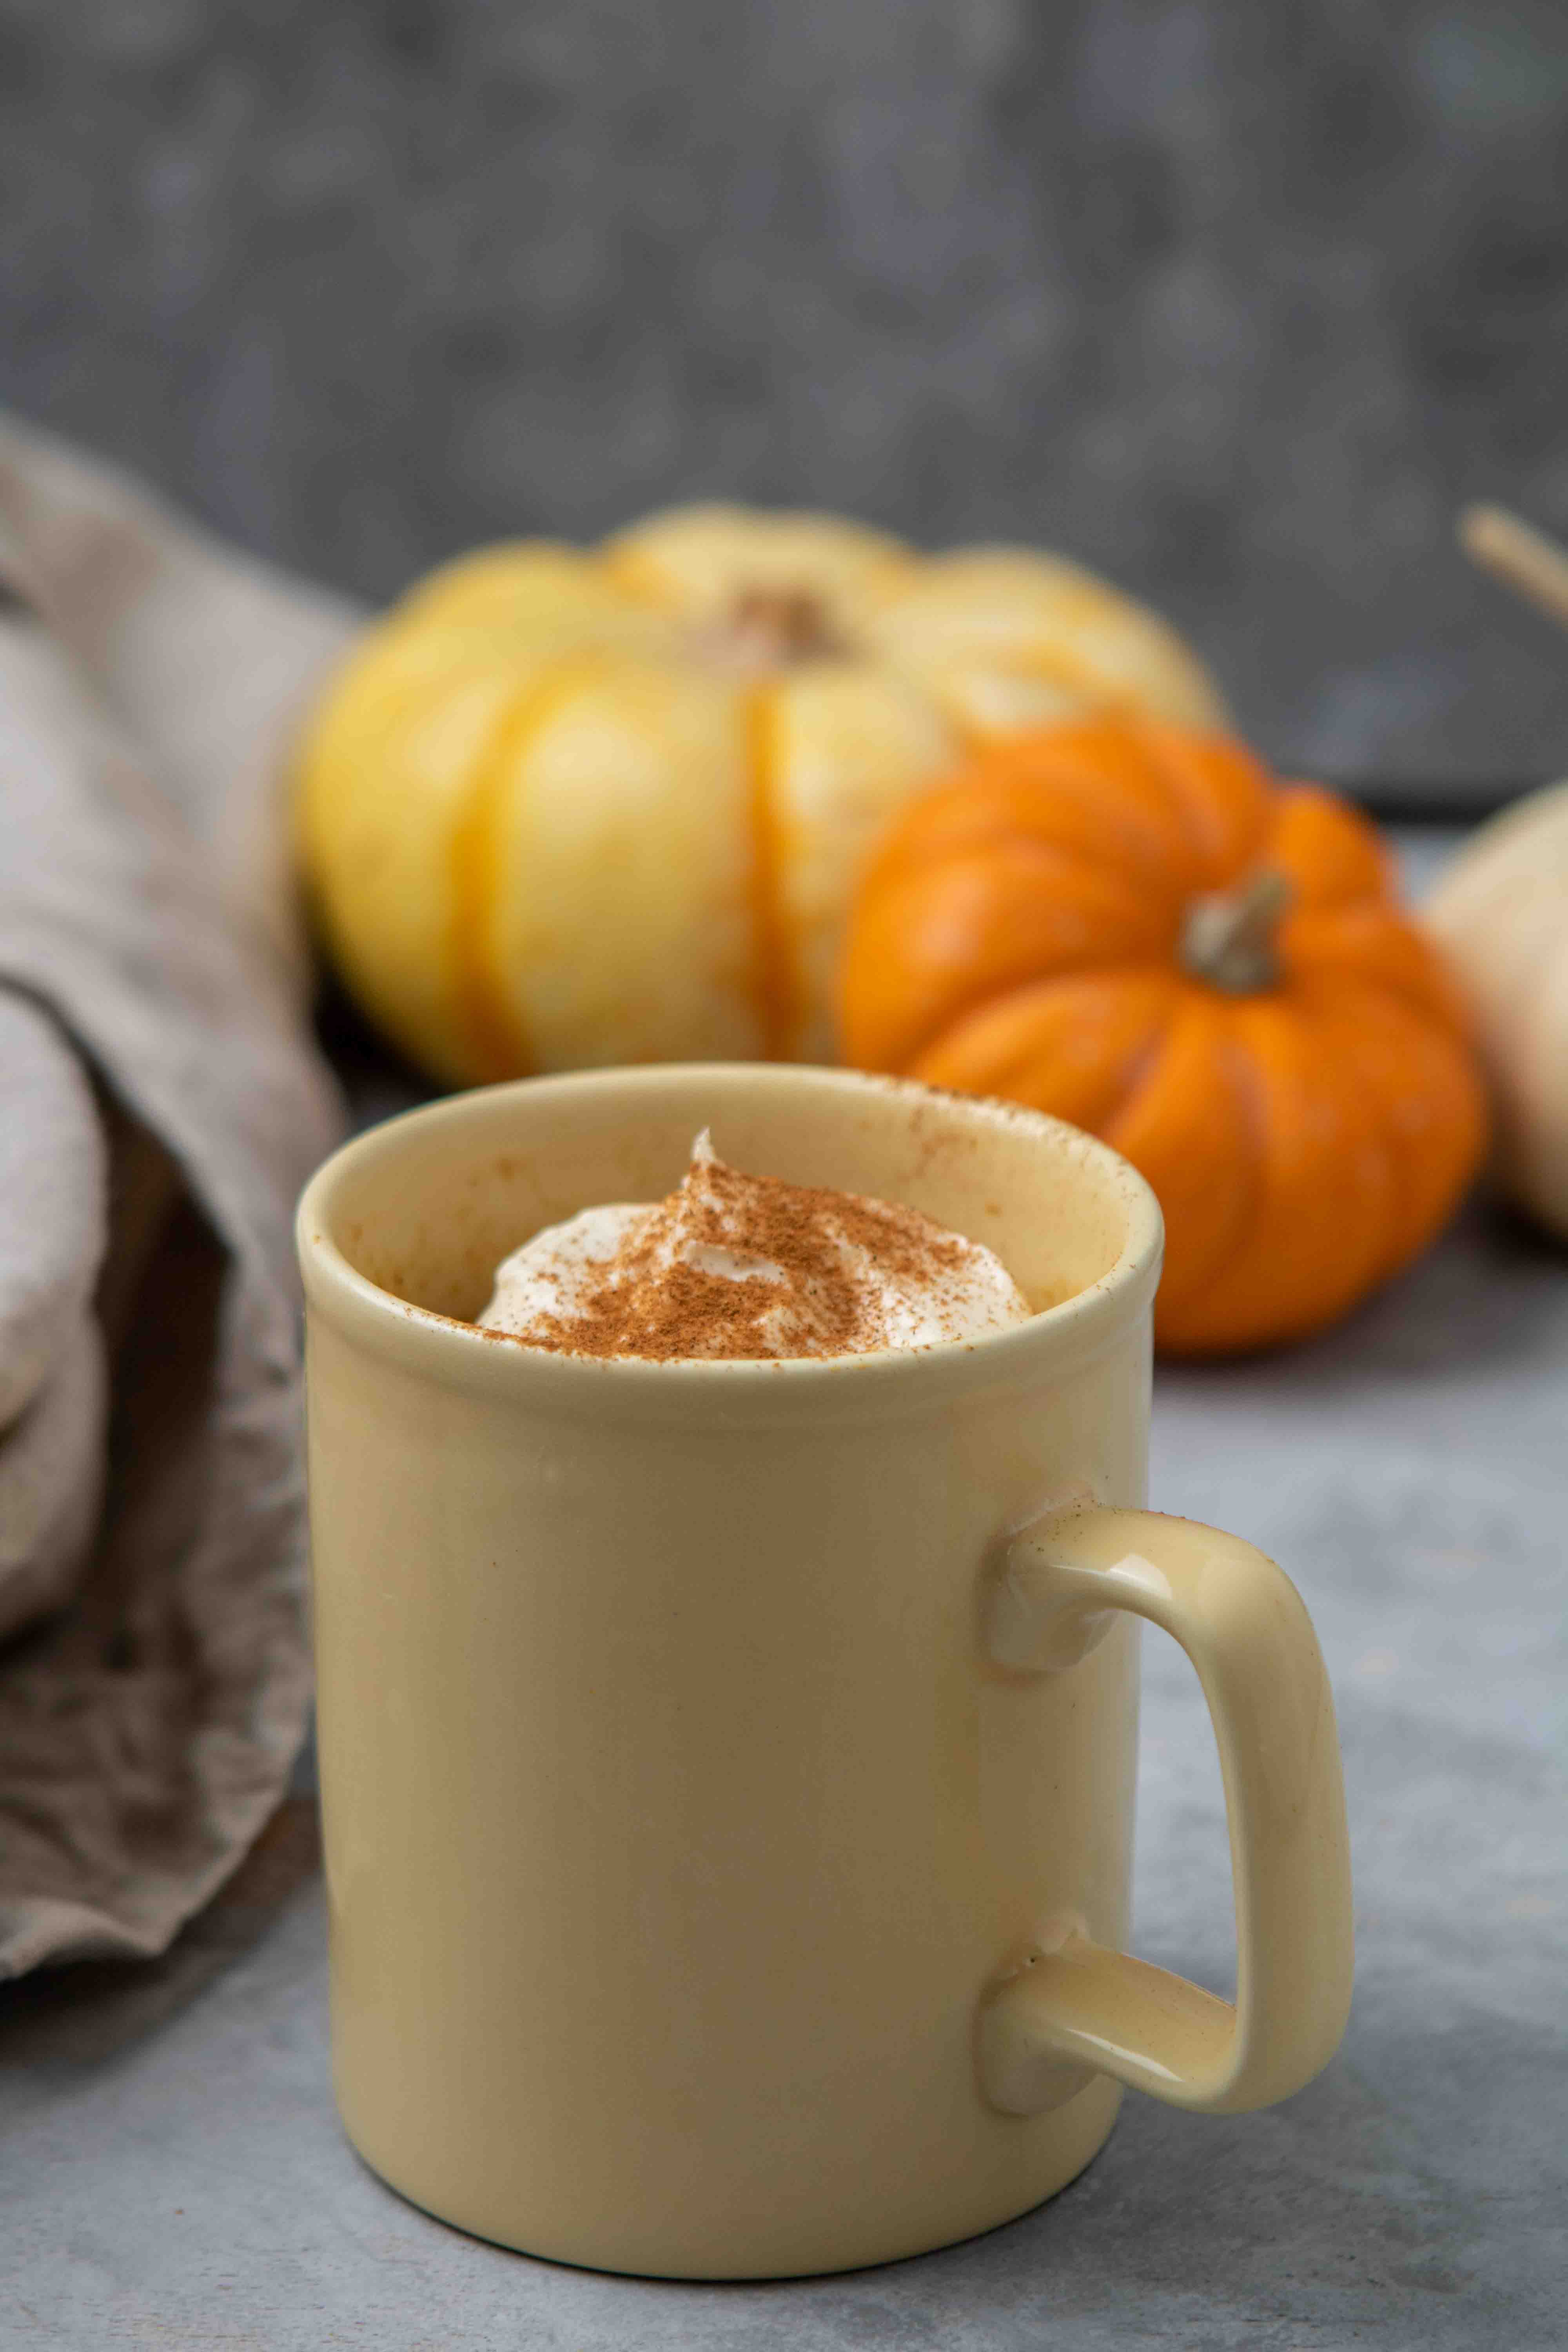 Pumpkin cake in a yellow mug